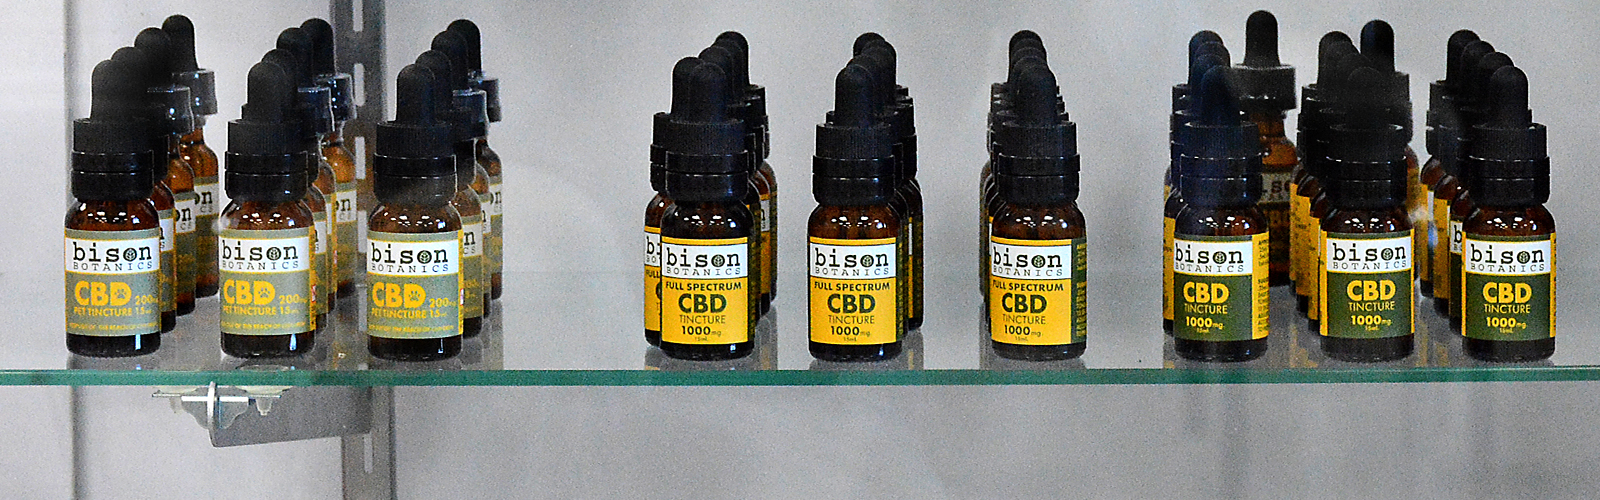 Bison Botanics produces high-quality craft cannabinoid products which aid in pain relief. <span class=&apos;image-credits&apos;>Dan Cappellazzo</span>